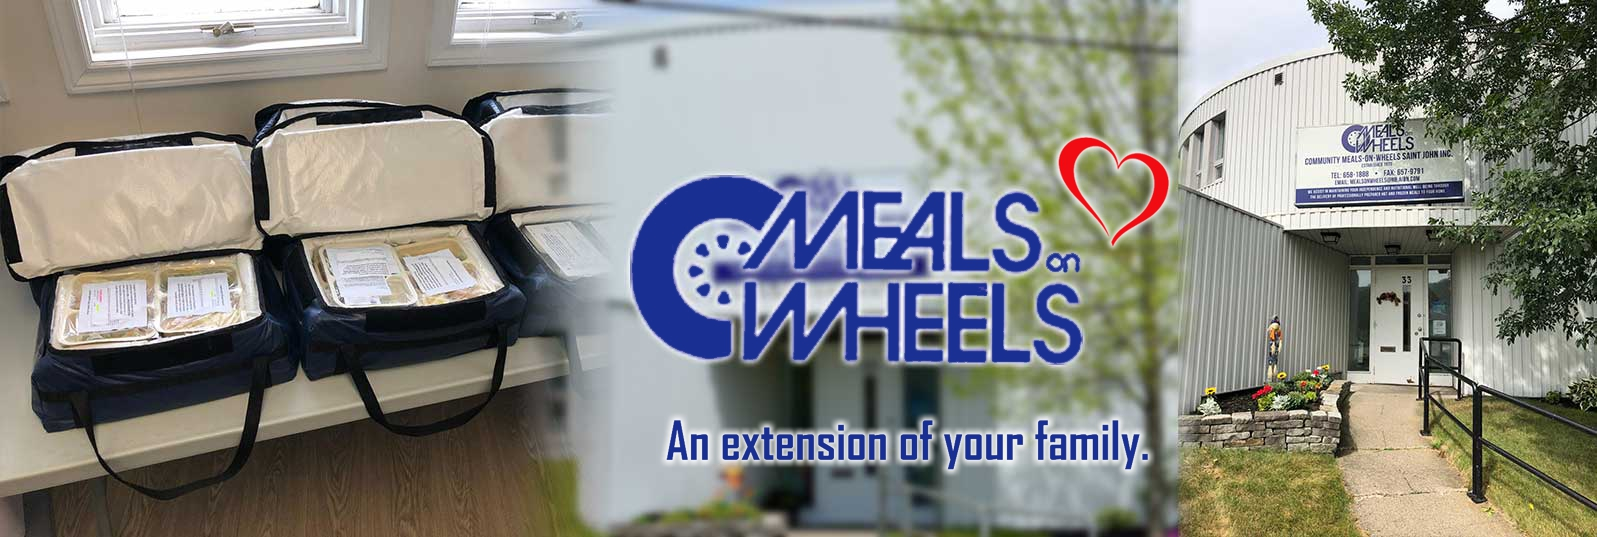 meals on wheels saint john